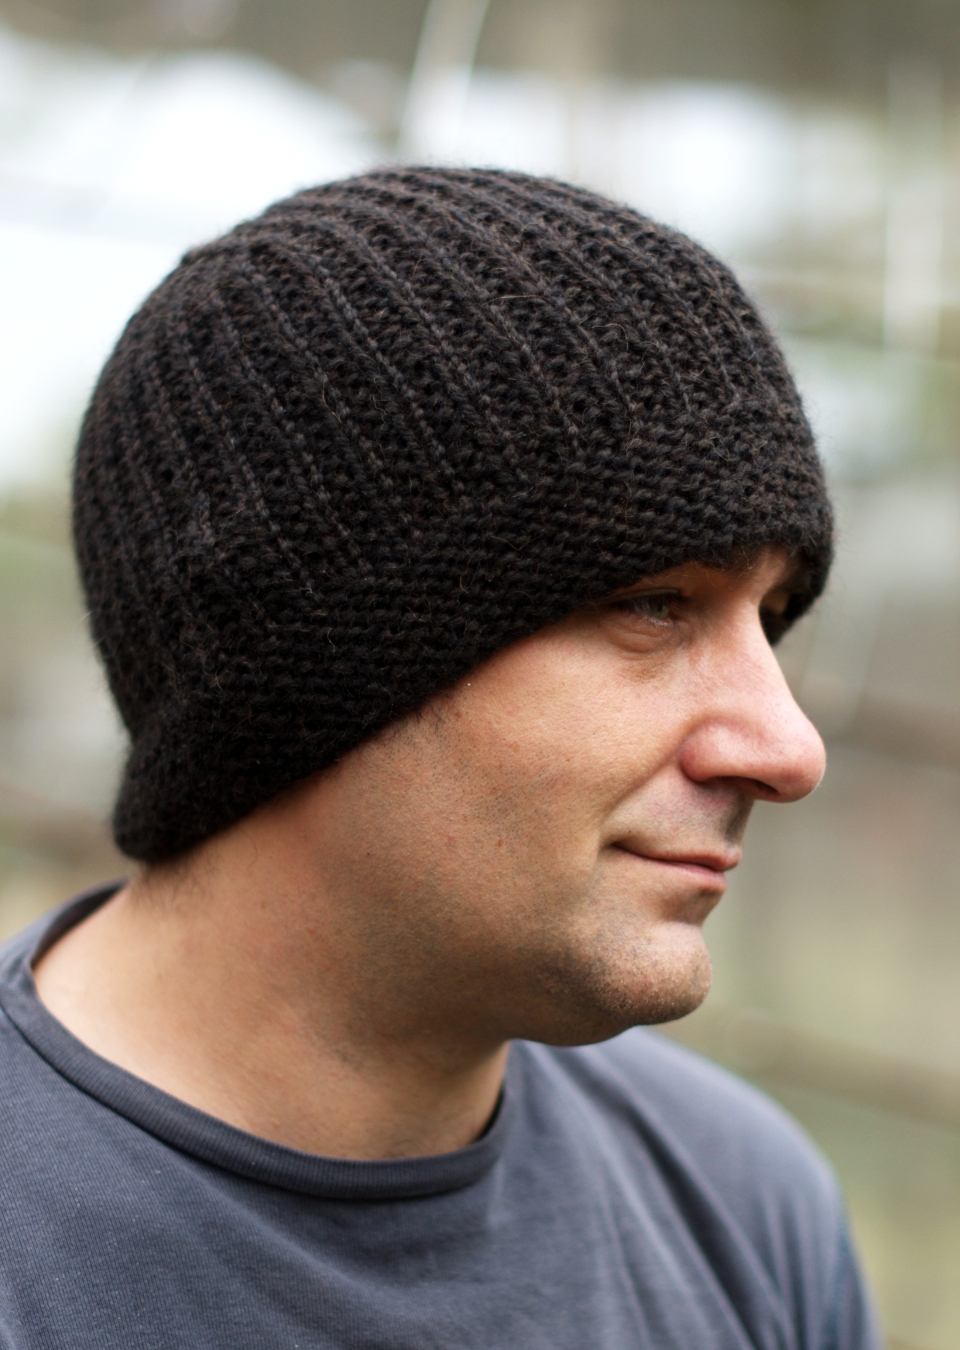 Mens Knitted Hat Patterns : Geko Mens Beanie Hat Knitting Kit